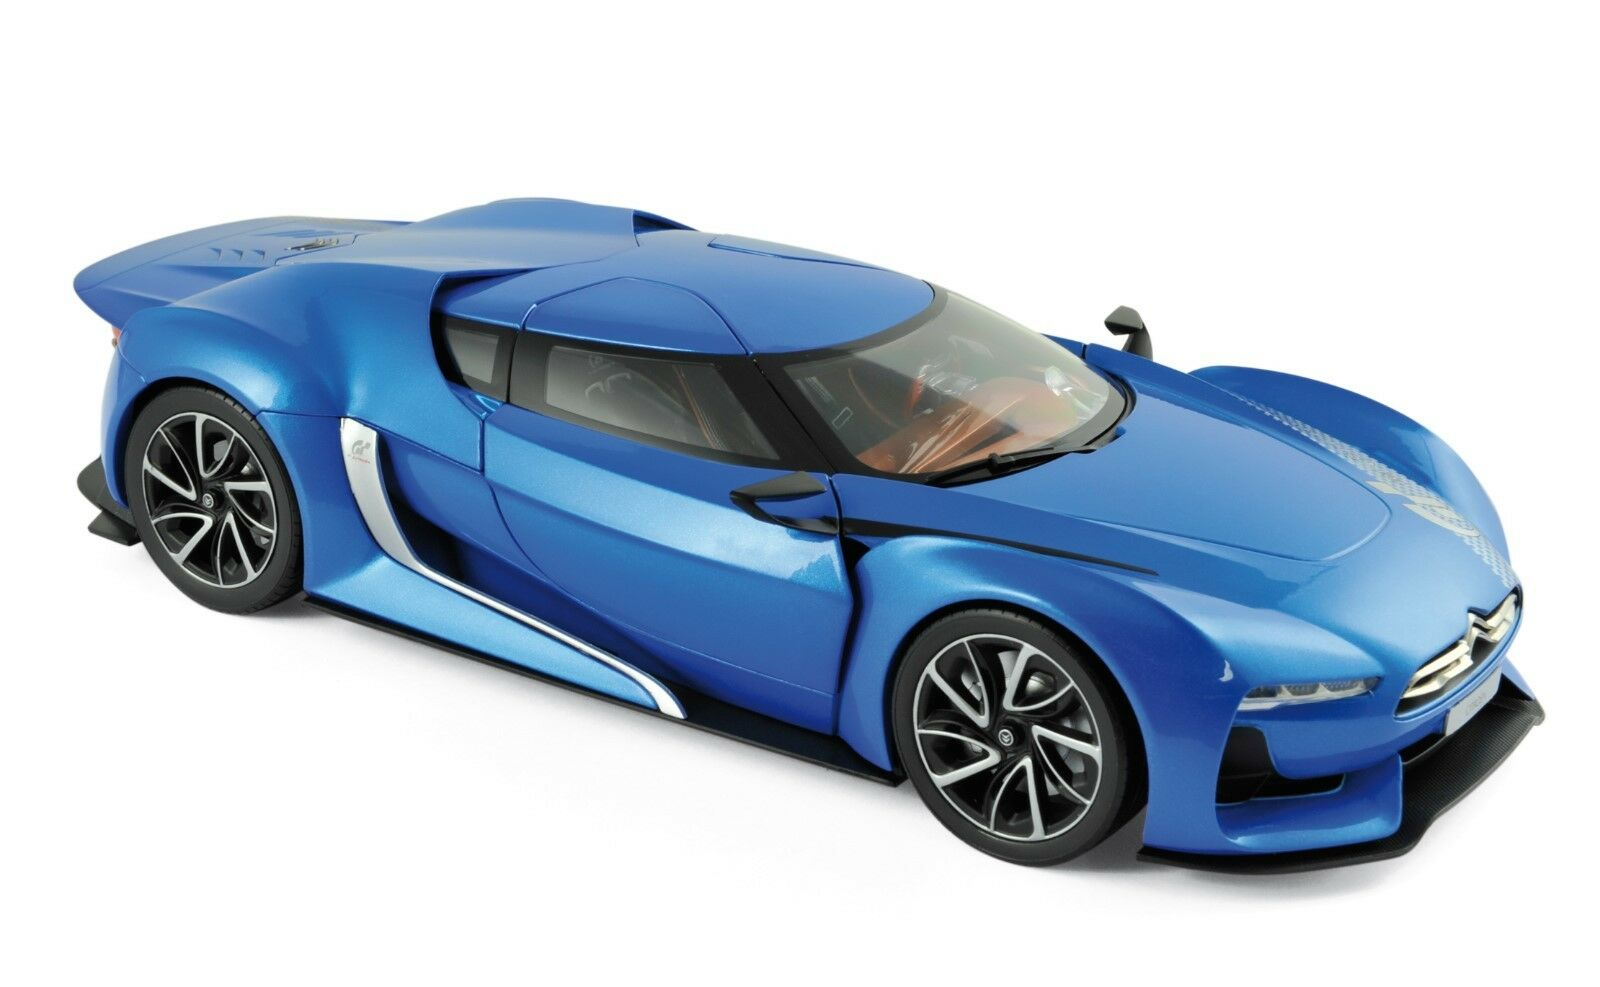 GT BY CITROEN 2008 Electic Blu 1:18 NOREV 181613 NUOVO & OVP